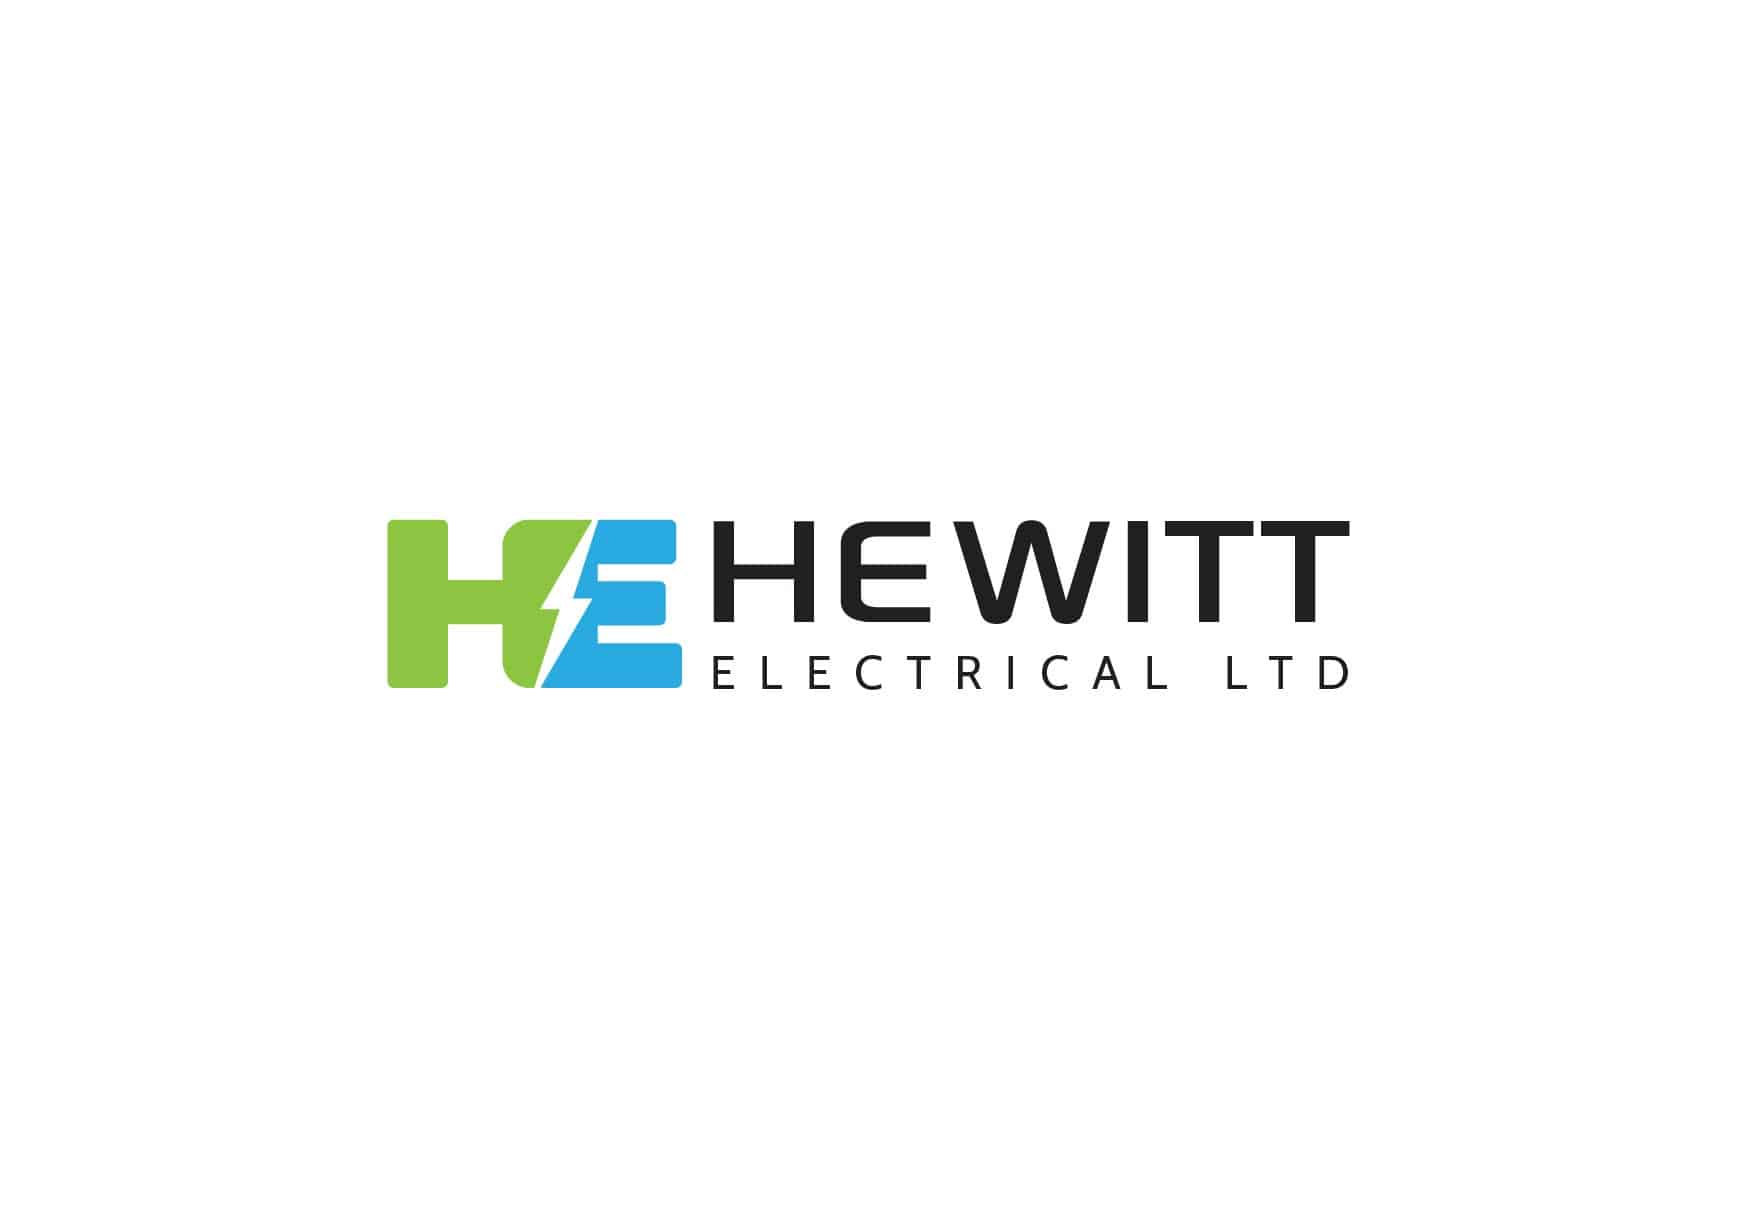 hewitt-electrical-logo